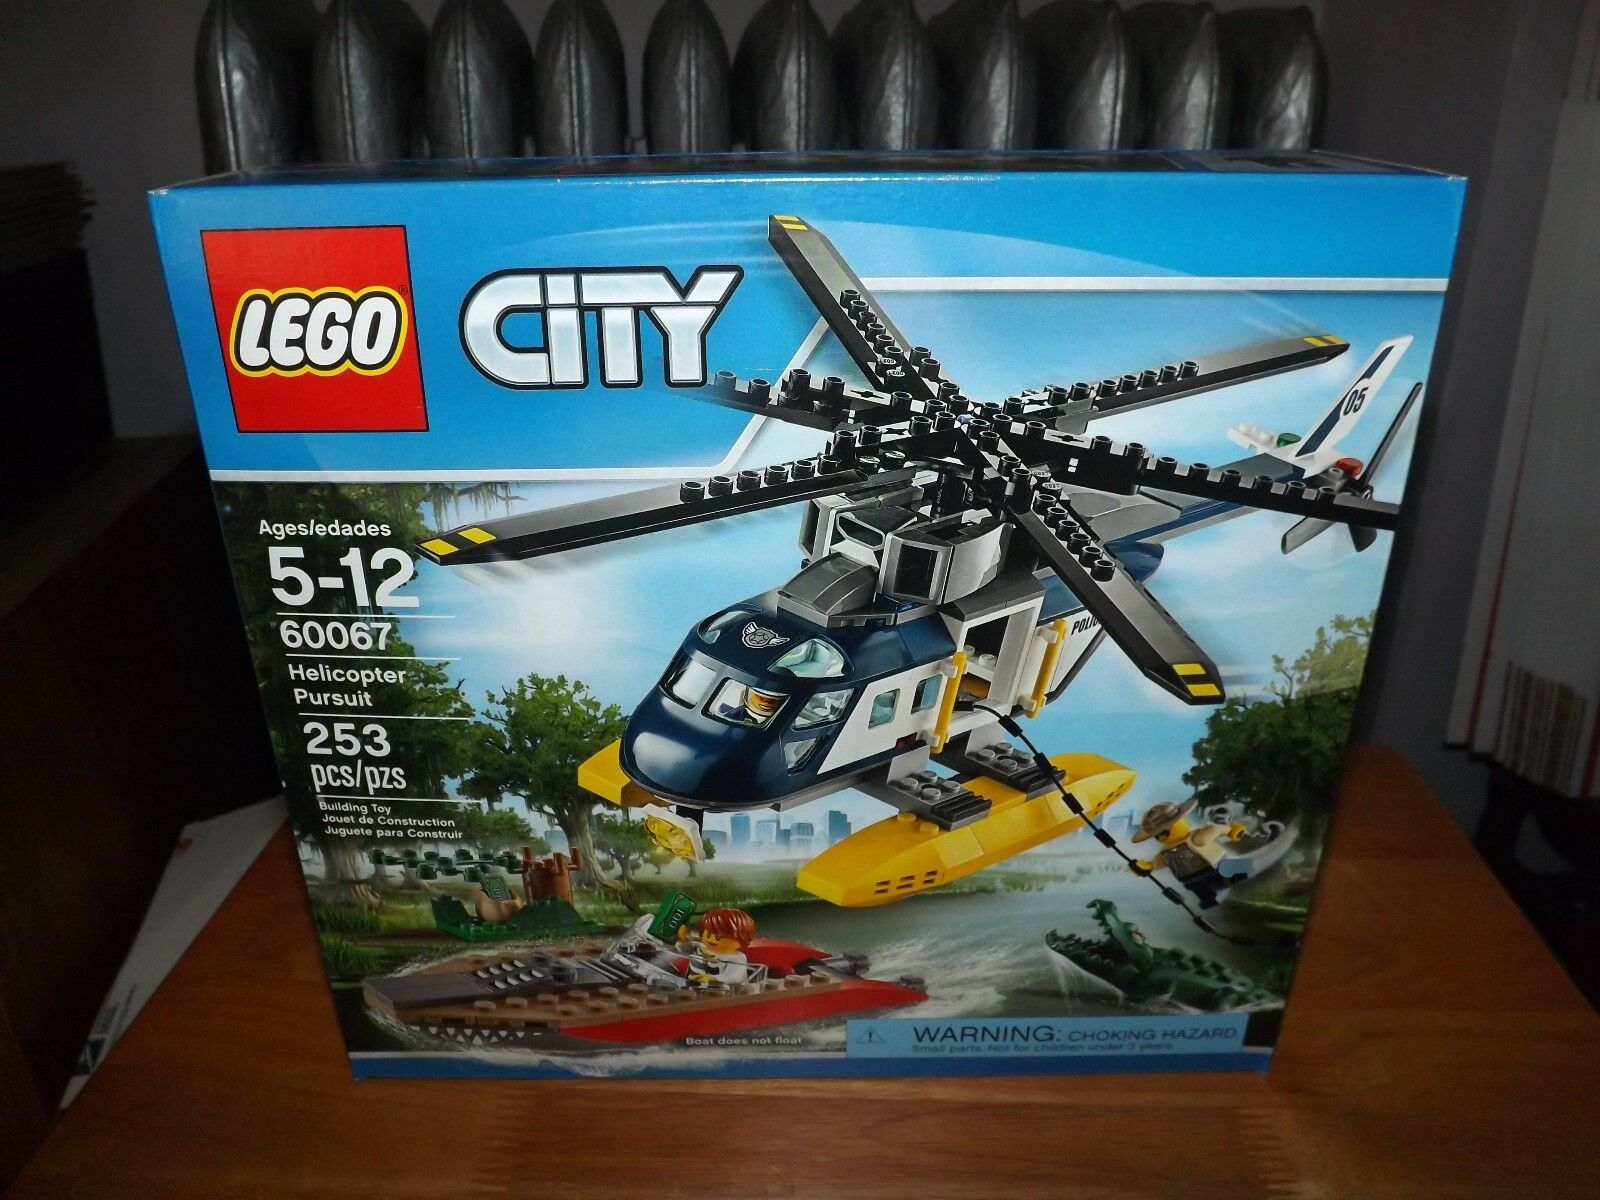 LEGO, CITY, HELICOPTER PURSUIT, KIT  60067, 253 PIECES, NIB, 2015